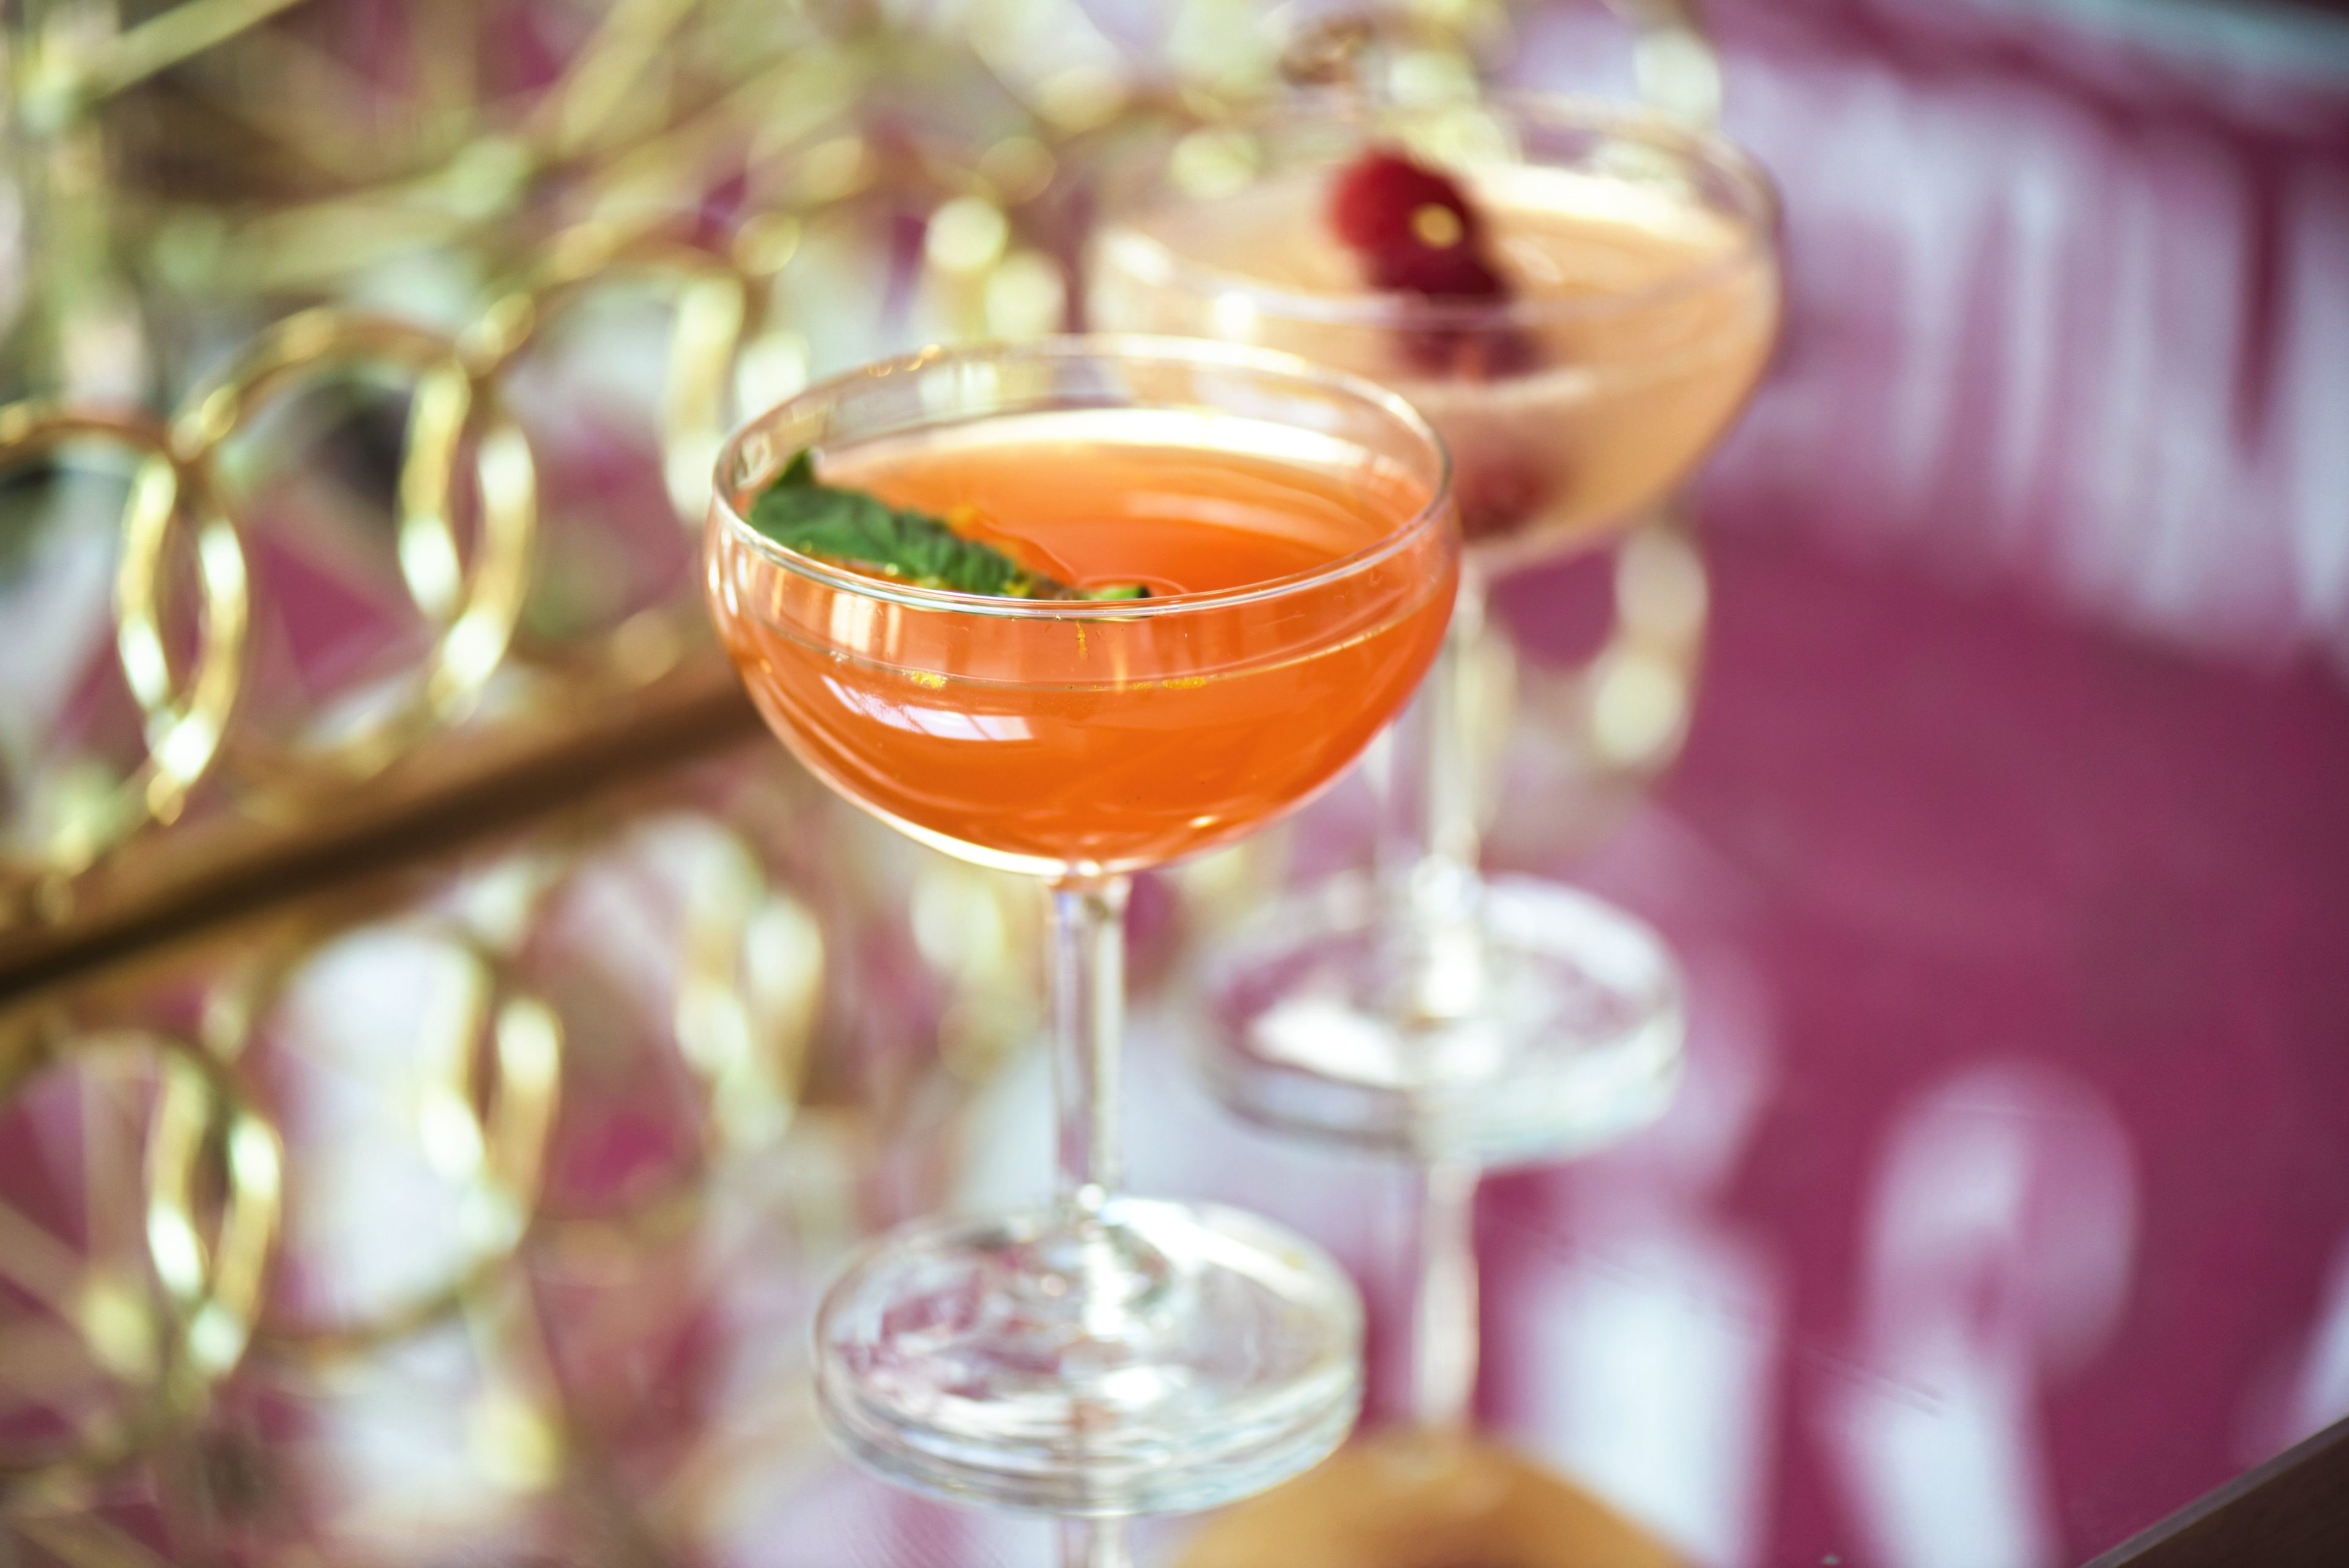 Orange and gold cocktails in coupe glasses